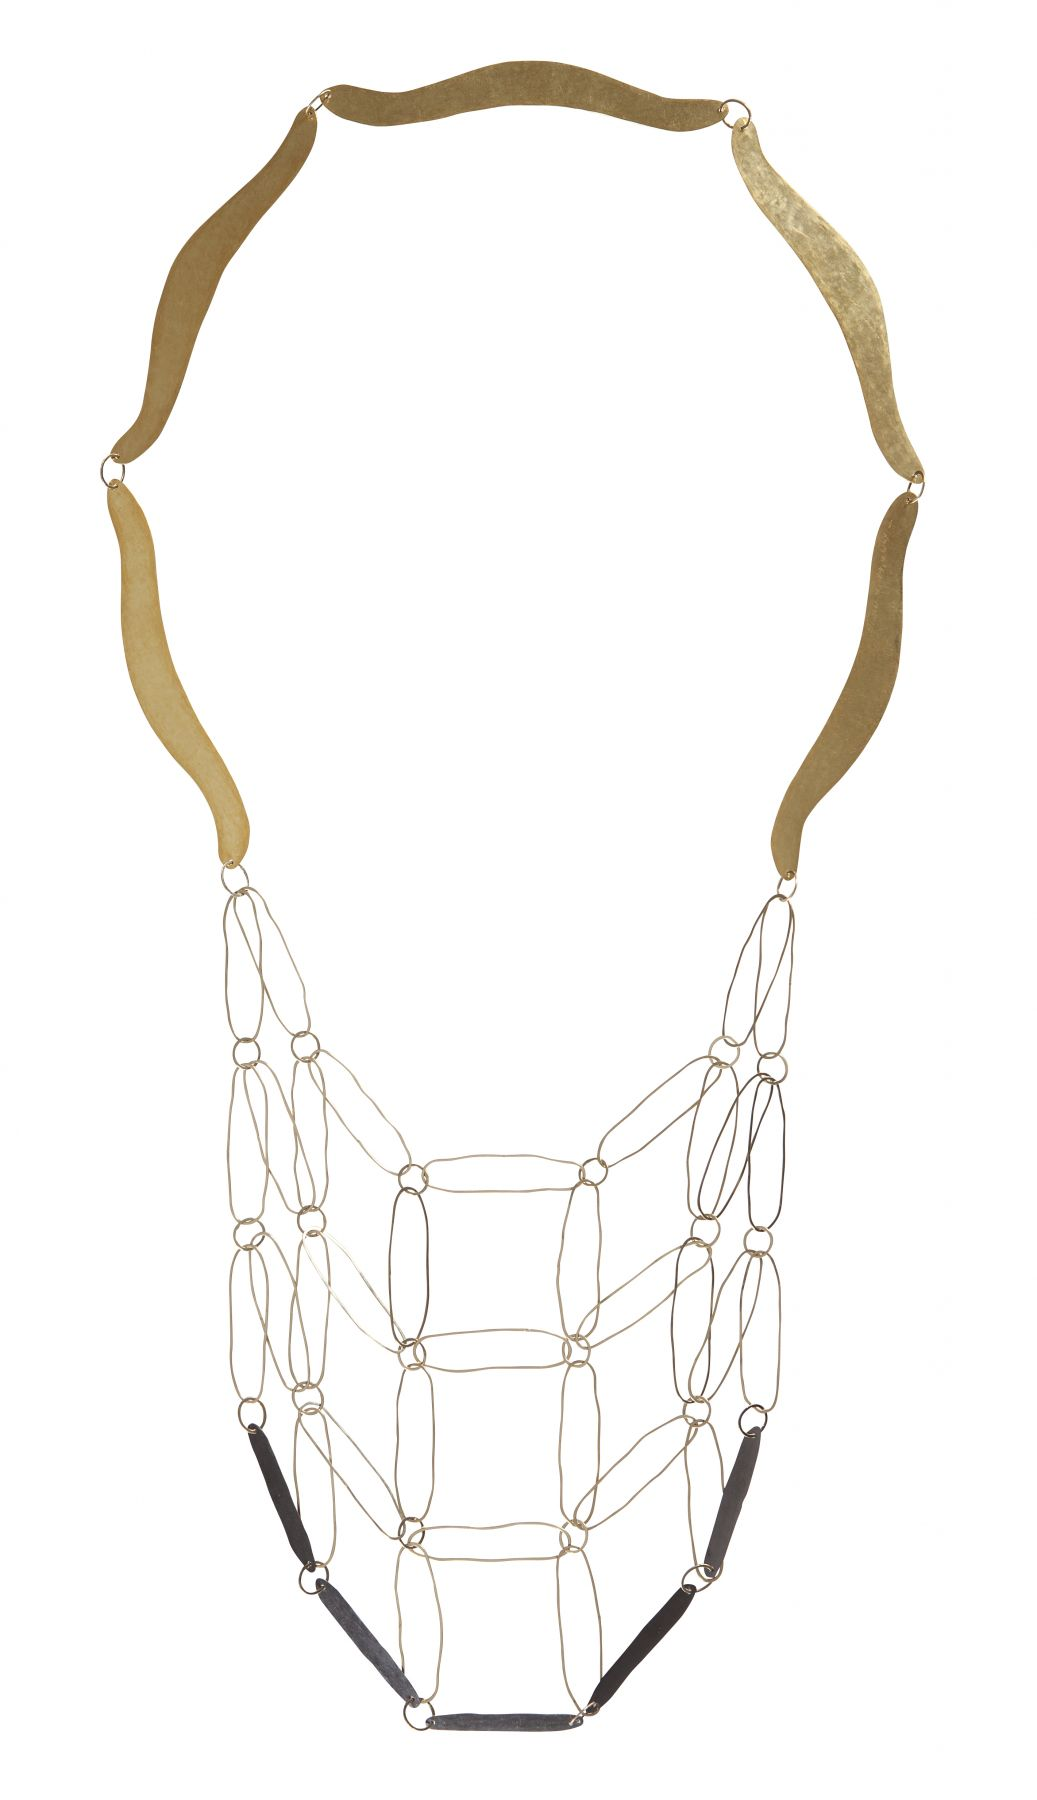 Annelies Planteydt, Dutch contemporary jewelry, gold